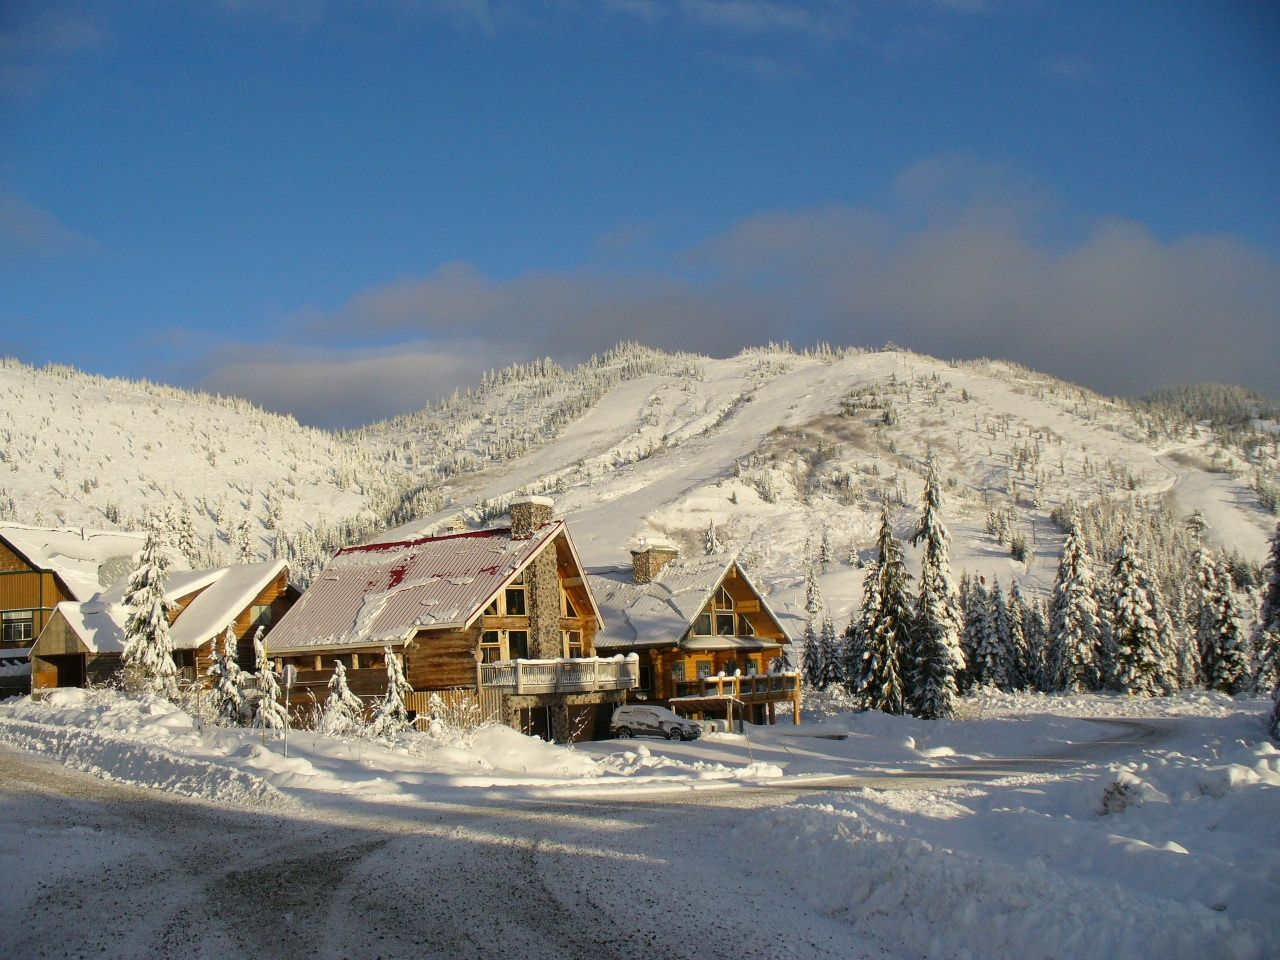 Hemlock Valley Ski Resort Very Close To Mission For A Great Day Of